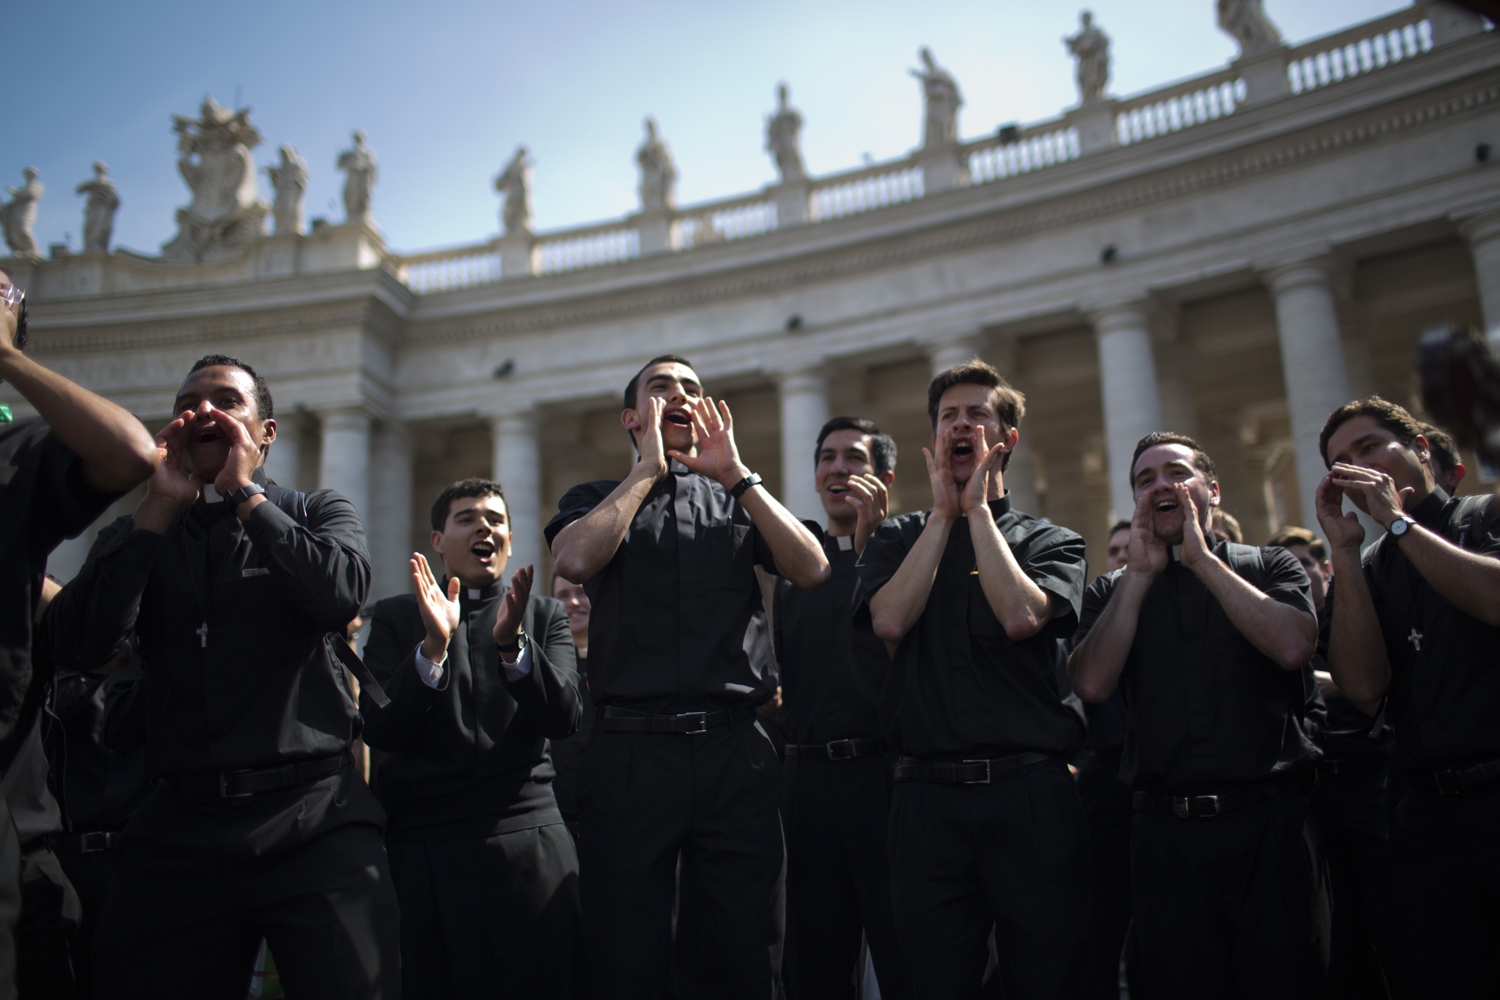 Priests sing and dance in St. Peter's Square at the Vatican, on Saturday, April 26, 2014. Pilgrims and faithful are gathering in Rome to attend Sunday's ceremony at the Vatican where Pope Francis will elevate in a solemn ceremony John XXIII and John Paul II to sainthood.